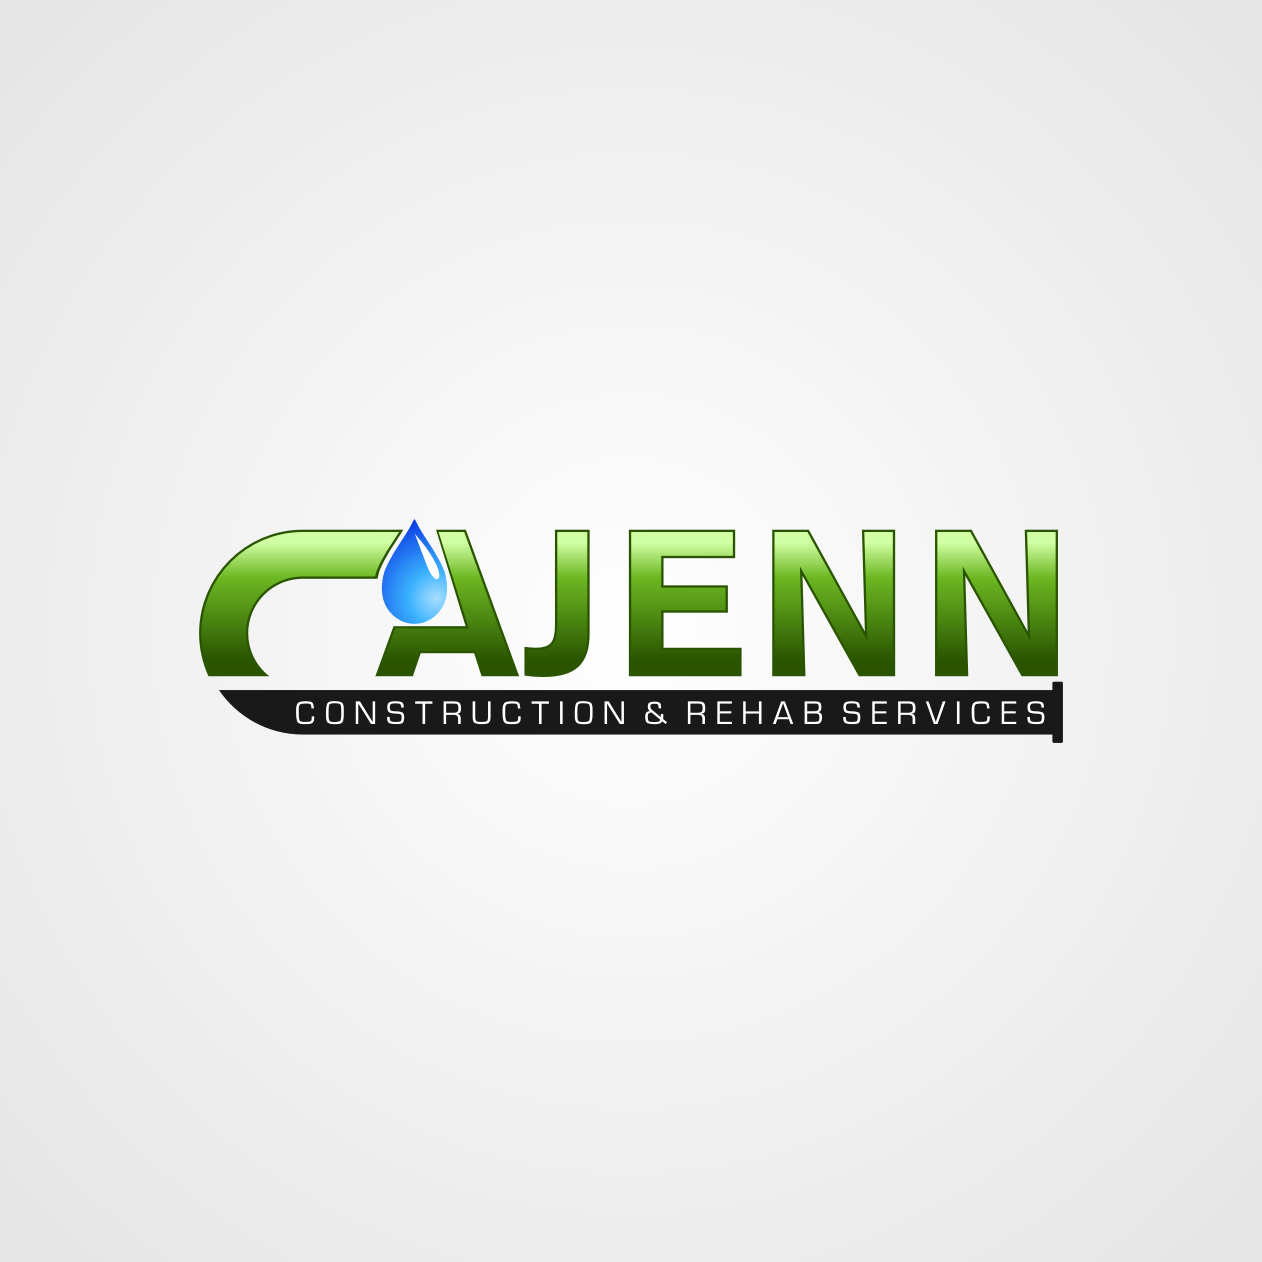 Logo Design by rifatz - Entry No. 136 in the Logo Design Contest New Logo Design for CaJenn Construction & Rehab Services.